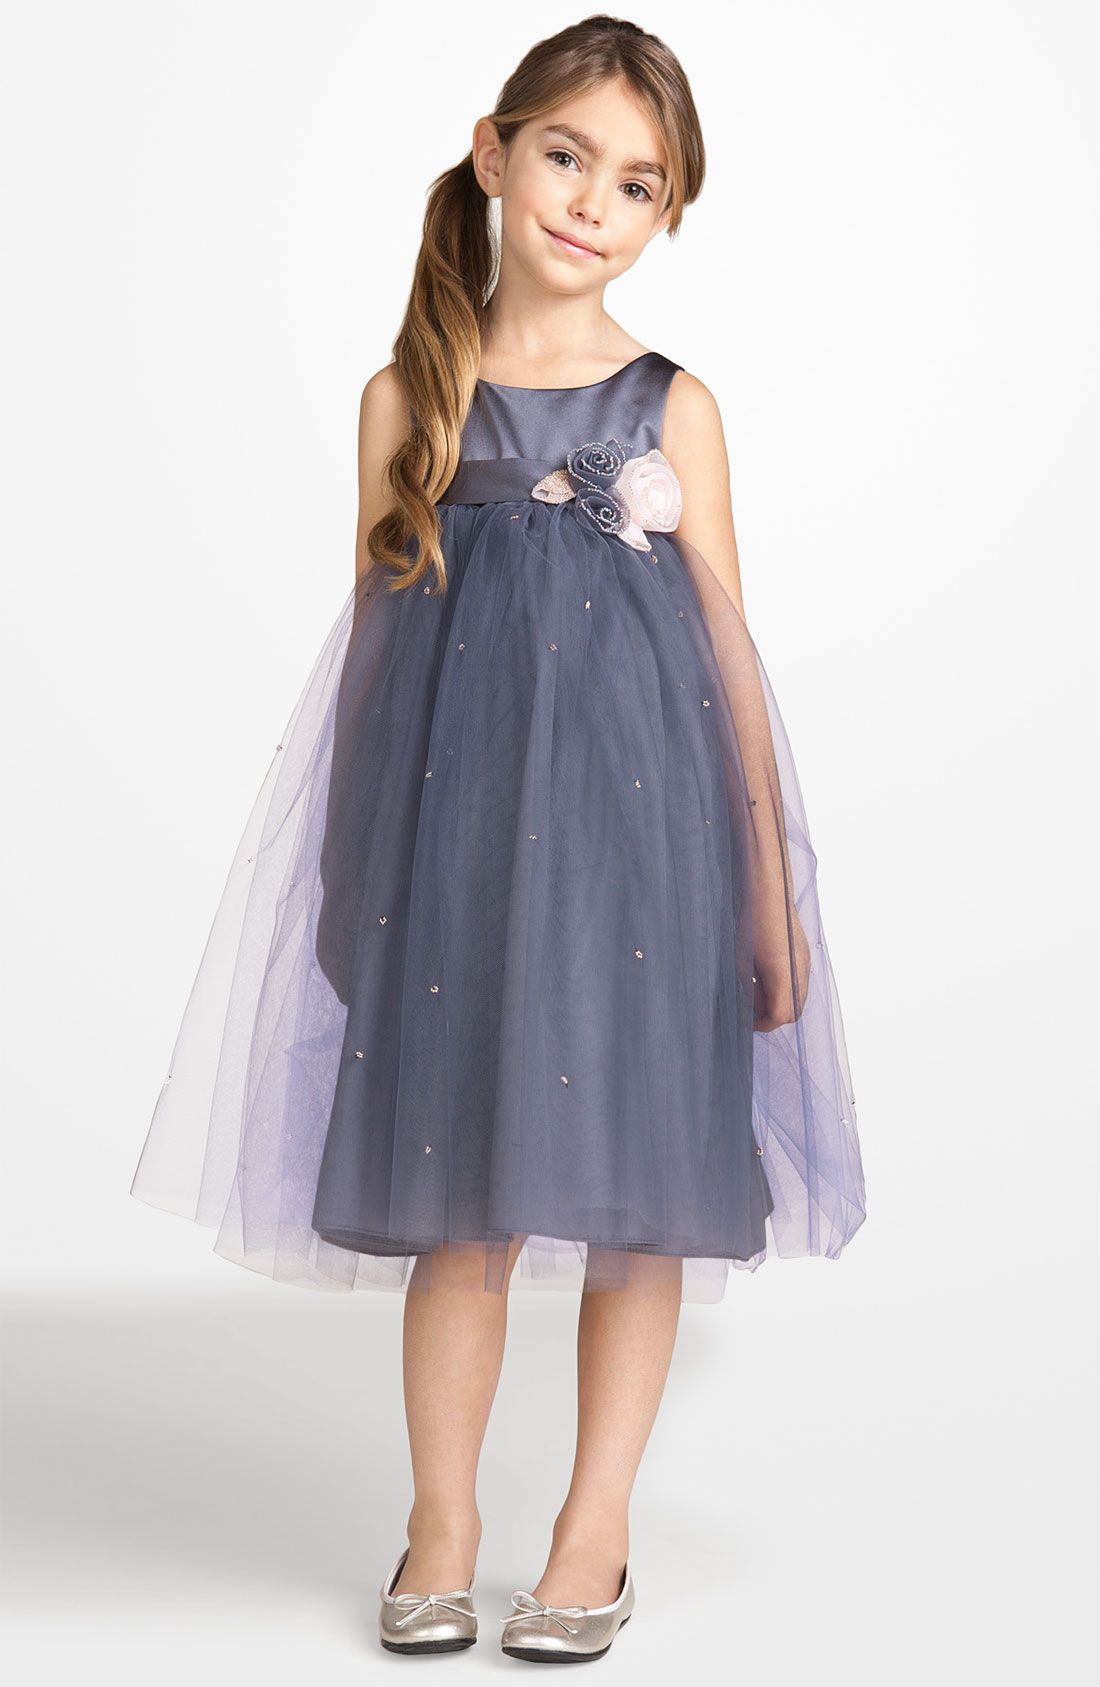 Big girl wedding dresses  US Angels dress  holiday  Little Girls Outfit  Pinterest  Satin